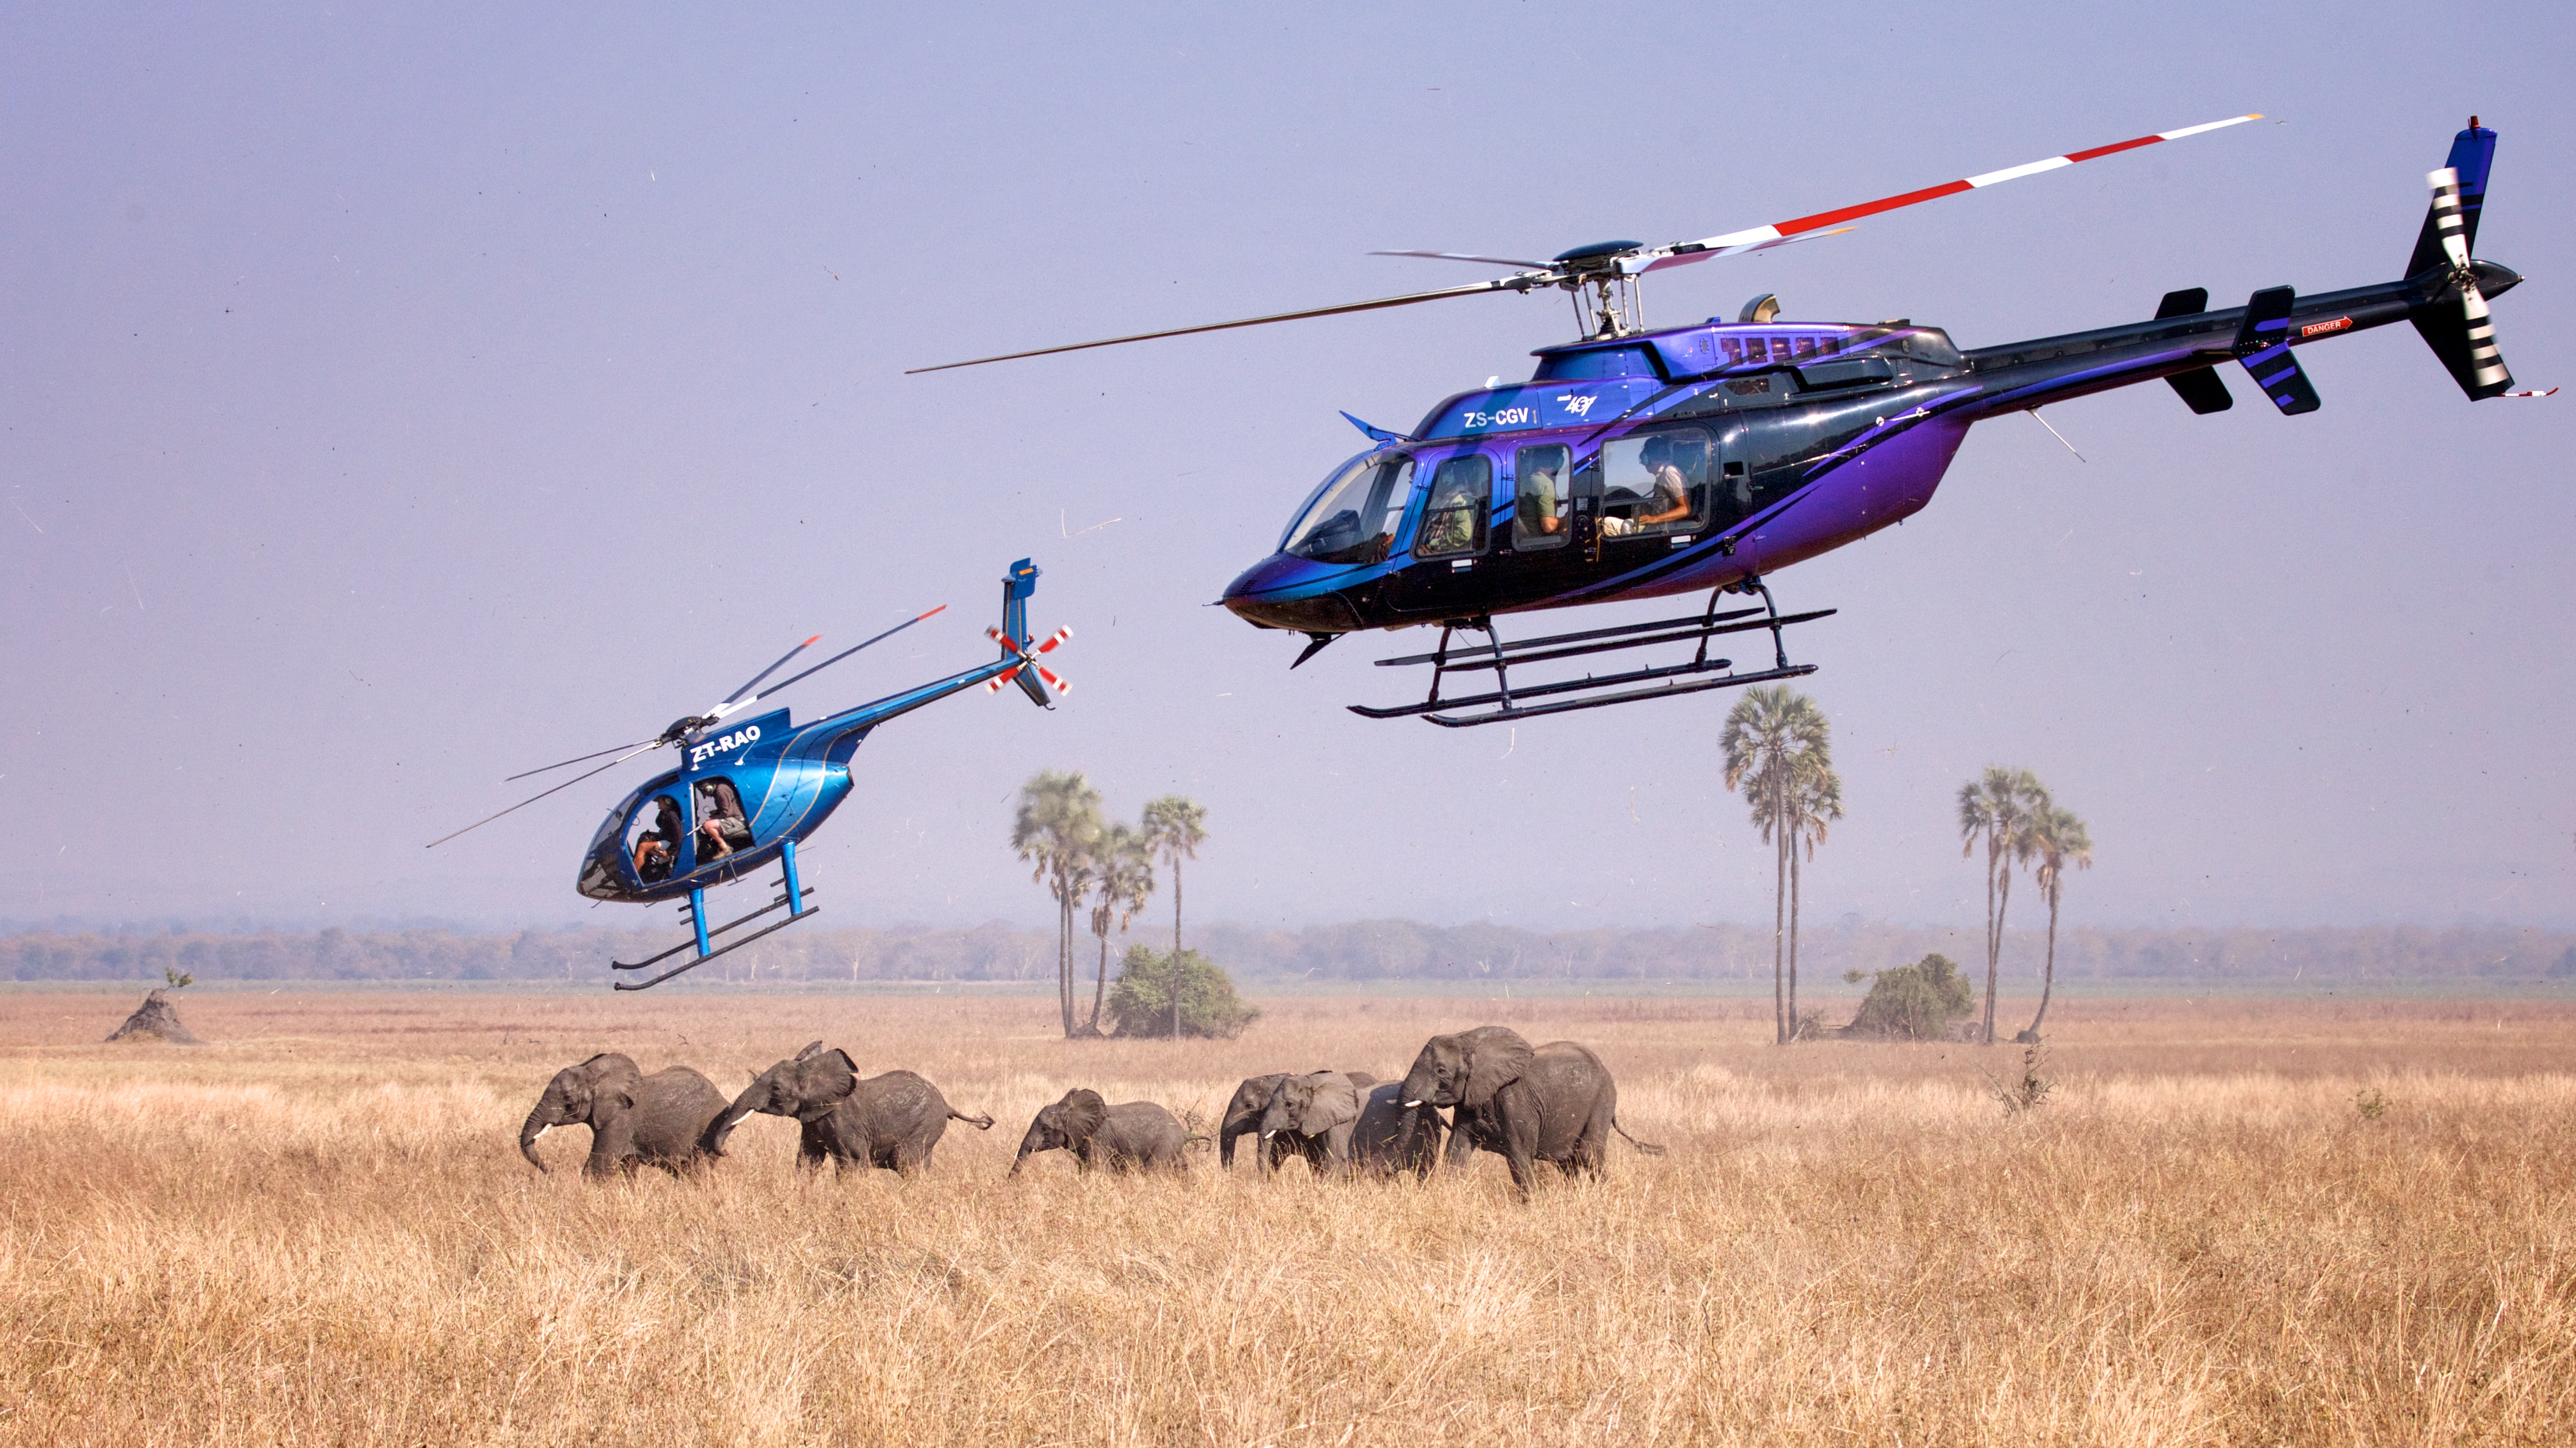 A family group of elephants is darted from the air. Photo by Frank Weitzer.